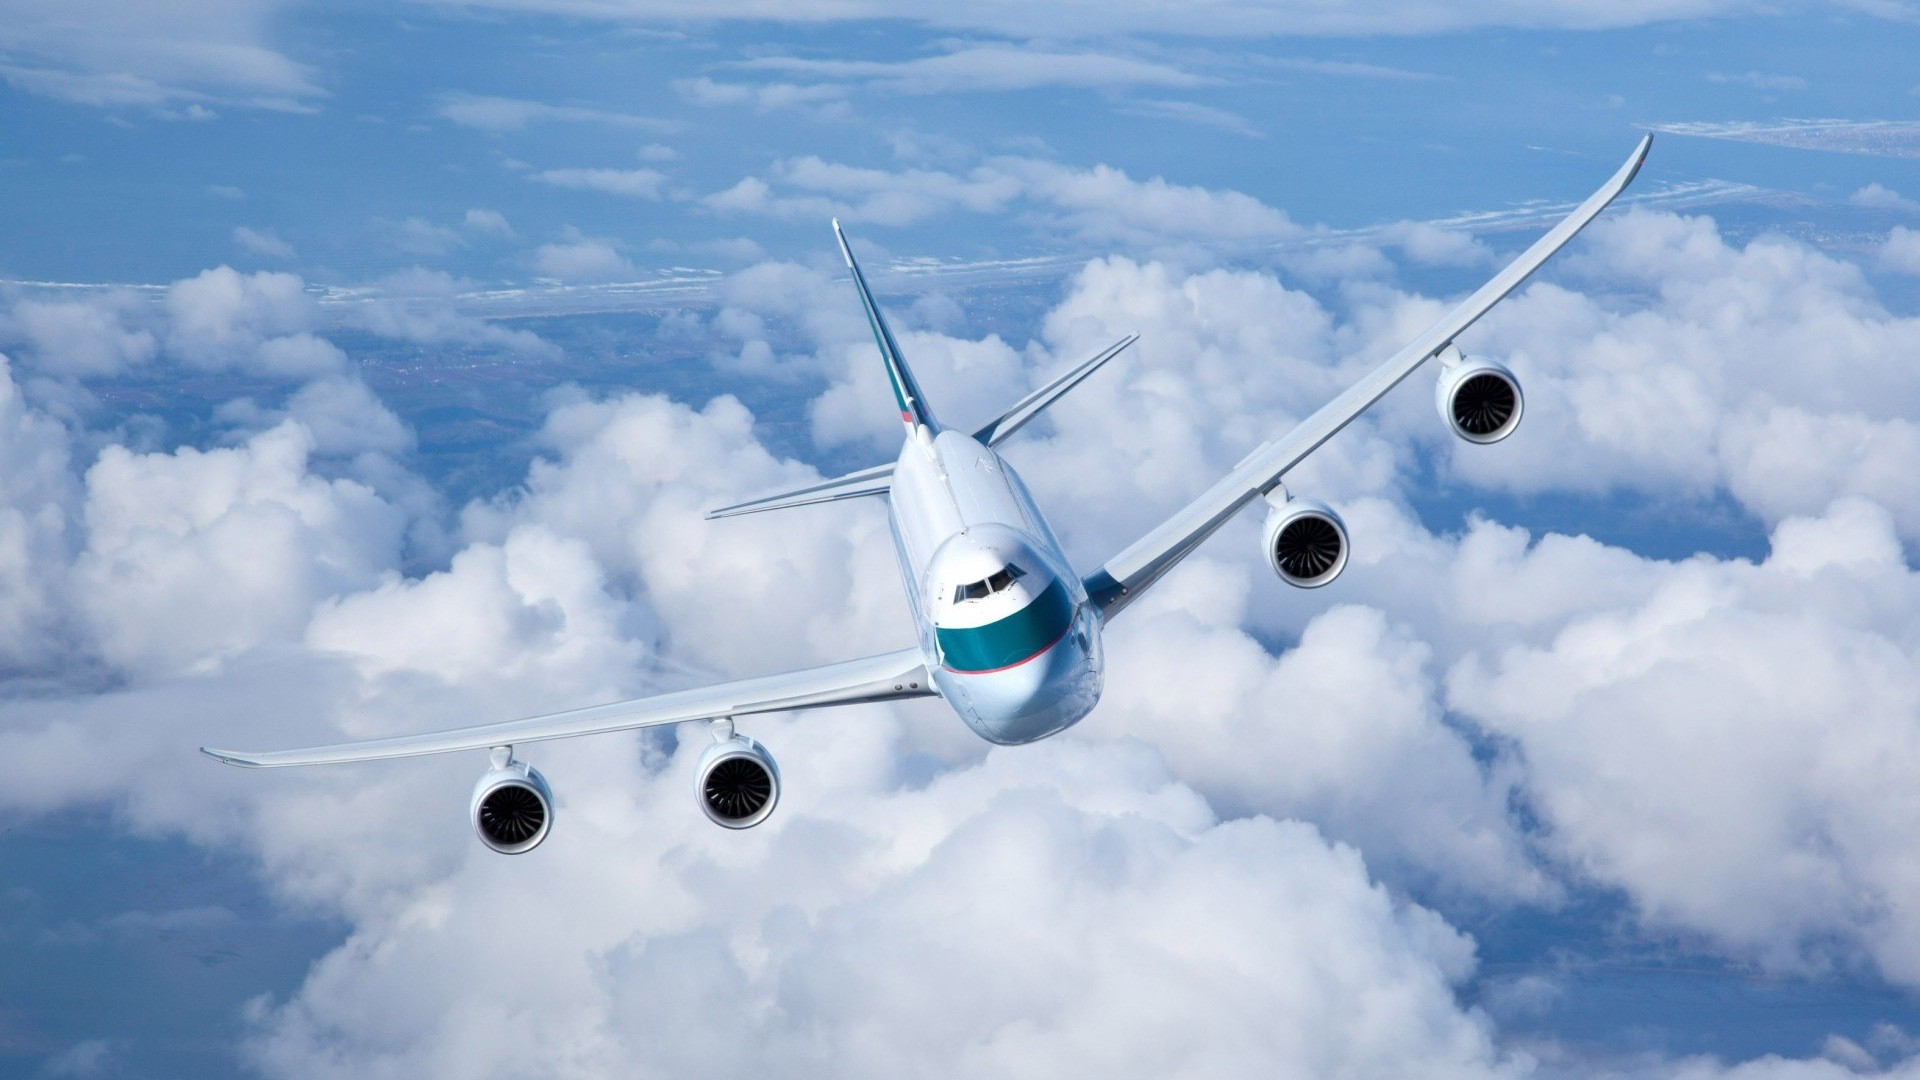 1920x1080 Boeing 747 Passagierflugzeug HD Wallpaper #13 - .